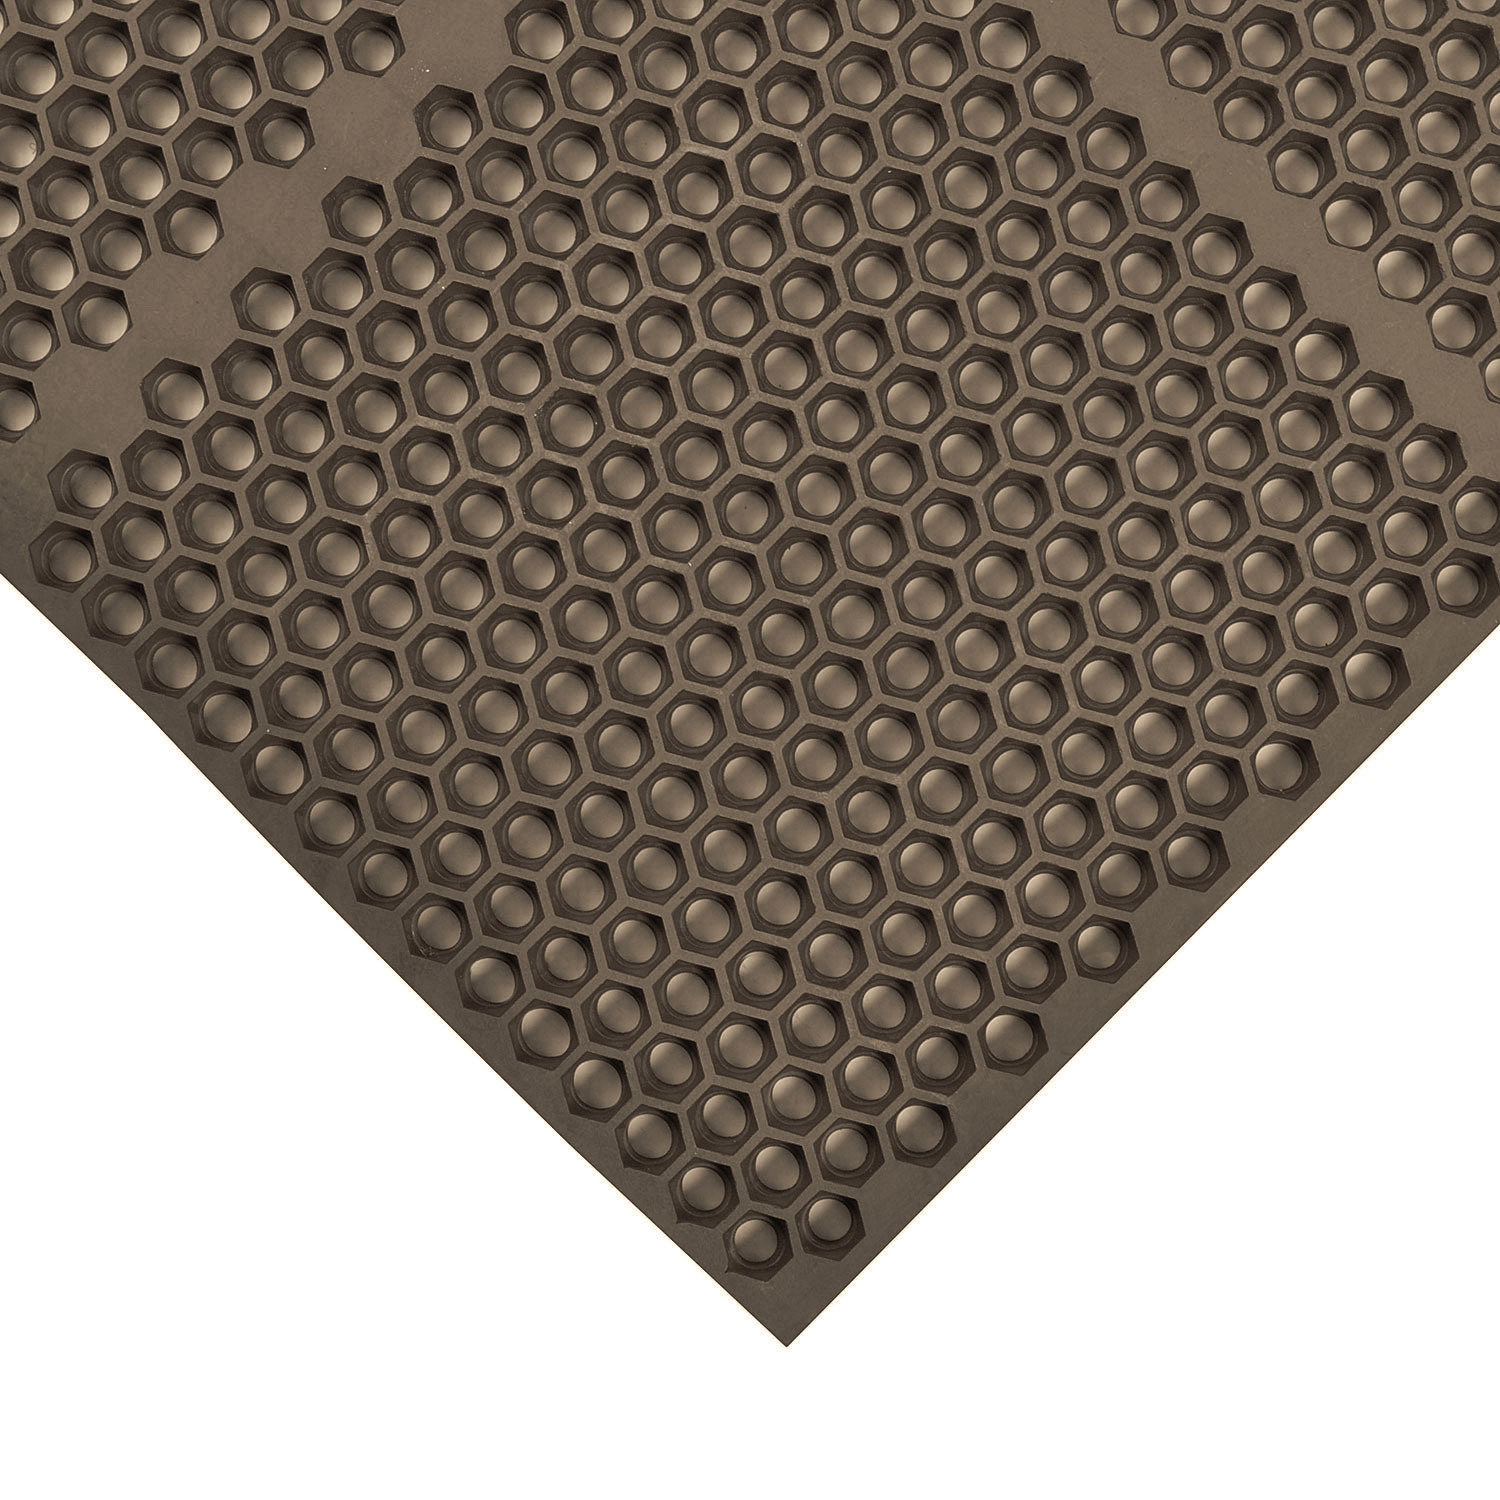 NoTrax 406181 Optimat Grease-Resistant Floor Mat, 36 x 72 in, 1/2 in Thic